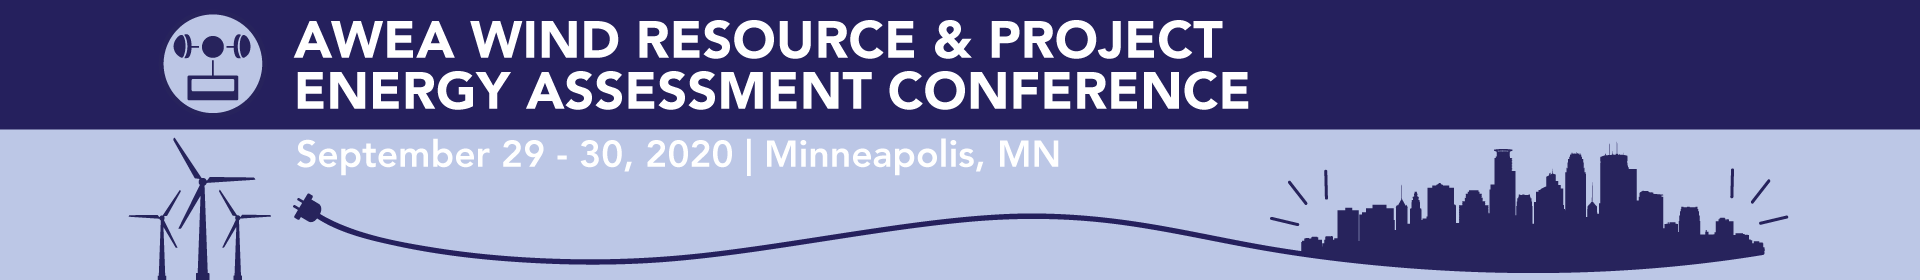 AWEA Wind Resource & Project Energy Assessment Conference 2020 Event Banner